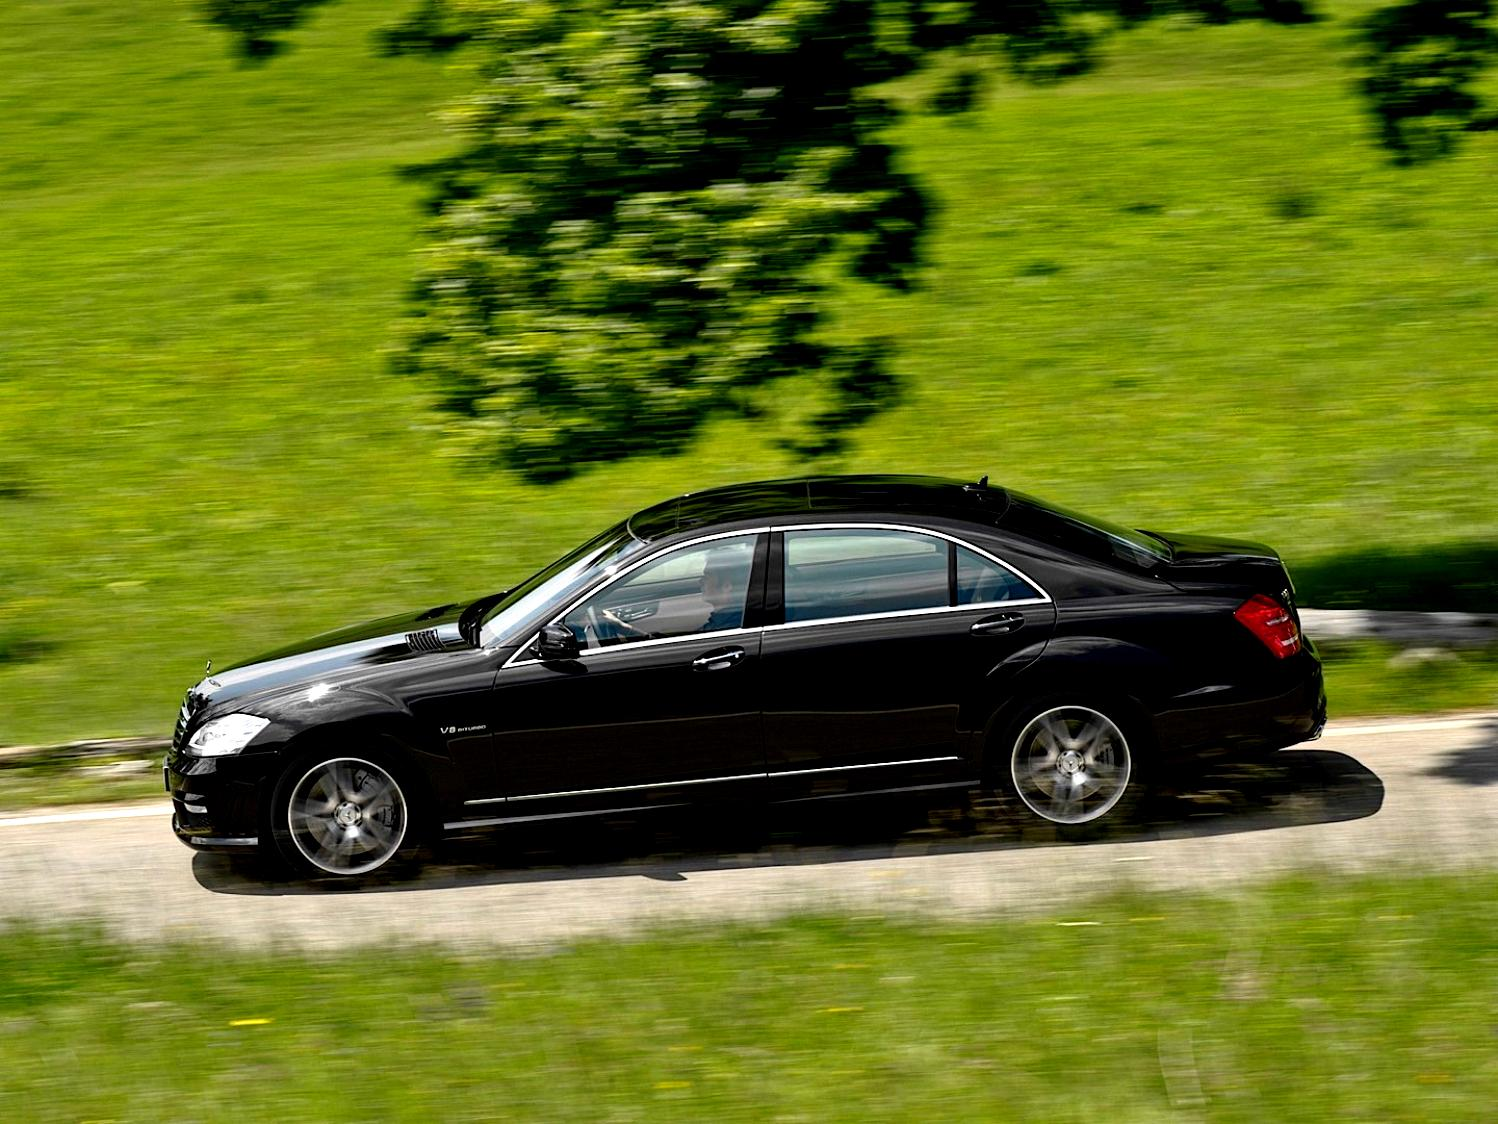 Mercedes benz s 63 amg w221 2009 on for Mercedes benz w221 price